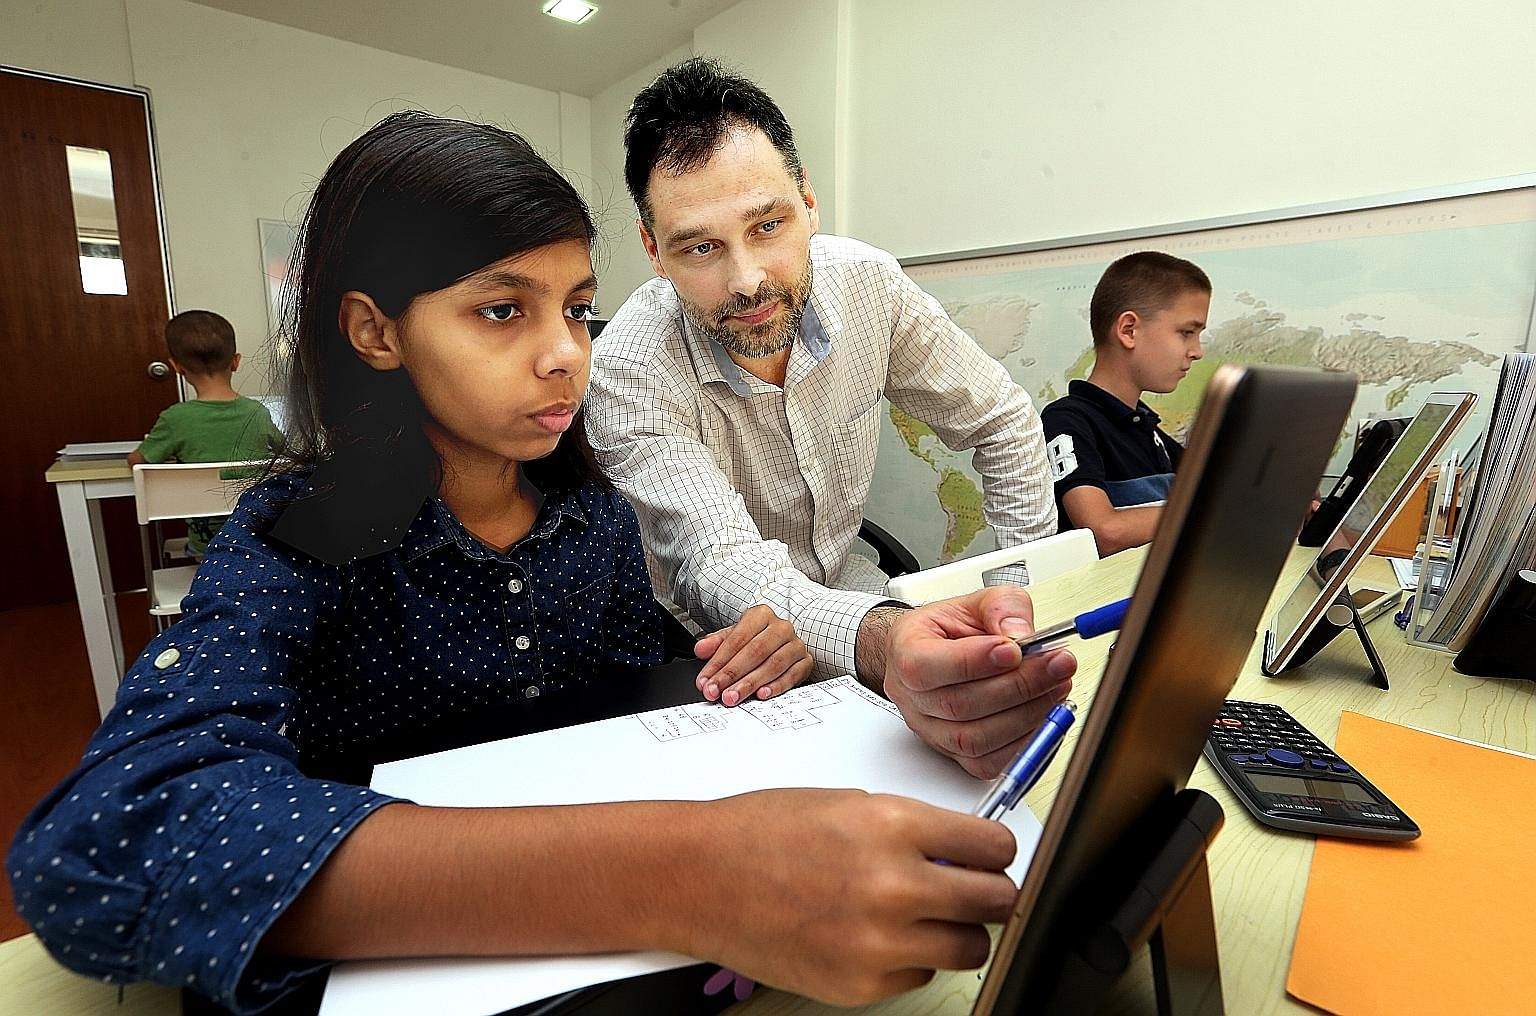 Dr Alexander Kuznetsov with student Shaistha Ahmed, 12. Armed with a PhD in maths and a master's in psychology, he has rapidly expanded his tuition centre in Yishun. His vision is to set up an international school here. Dr Kuznetsov wants his sons (f